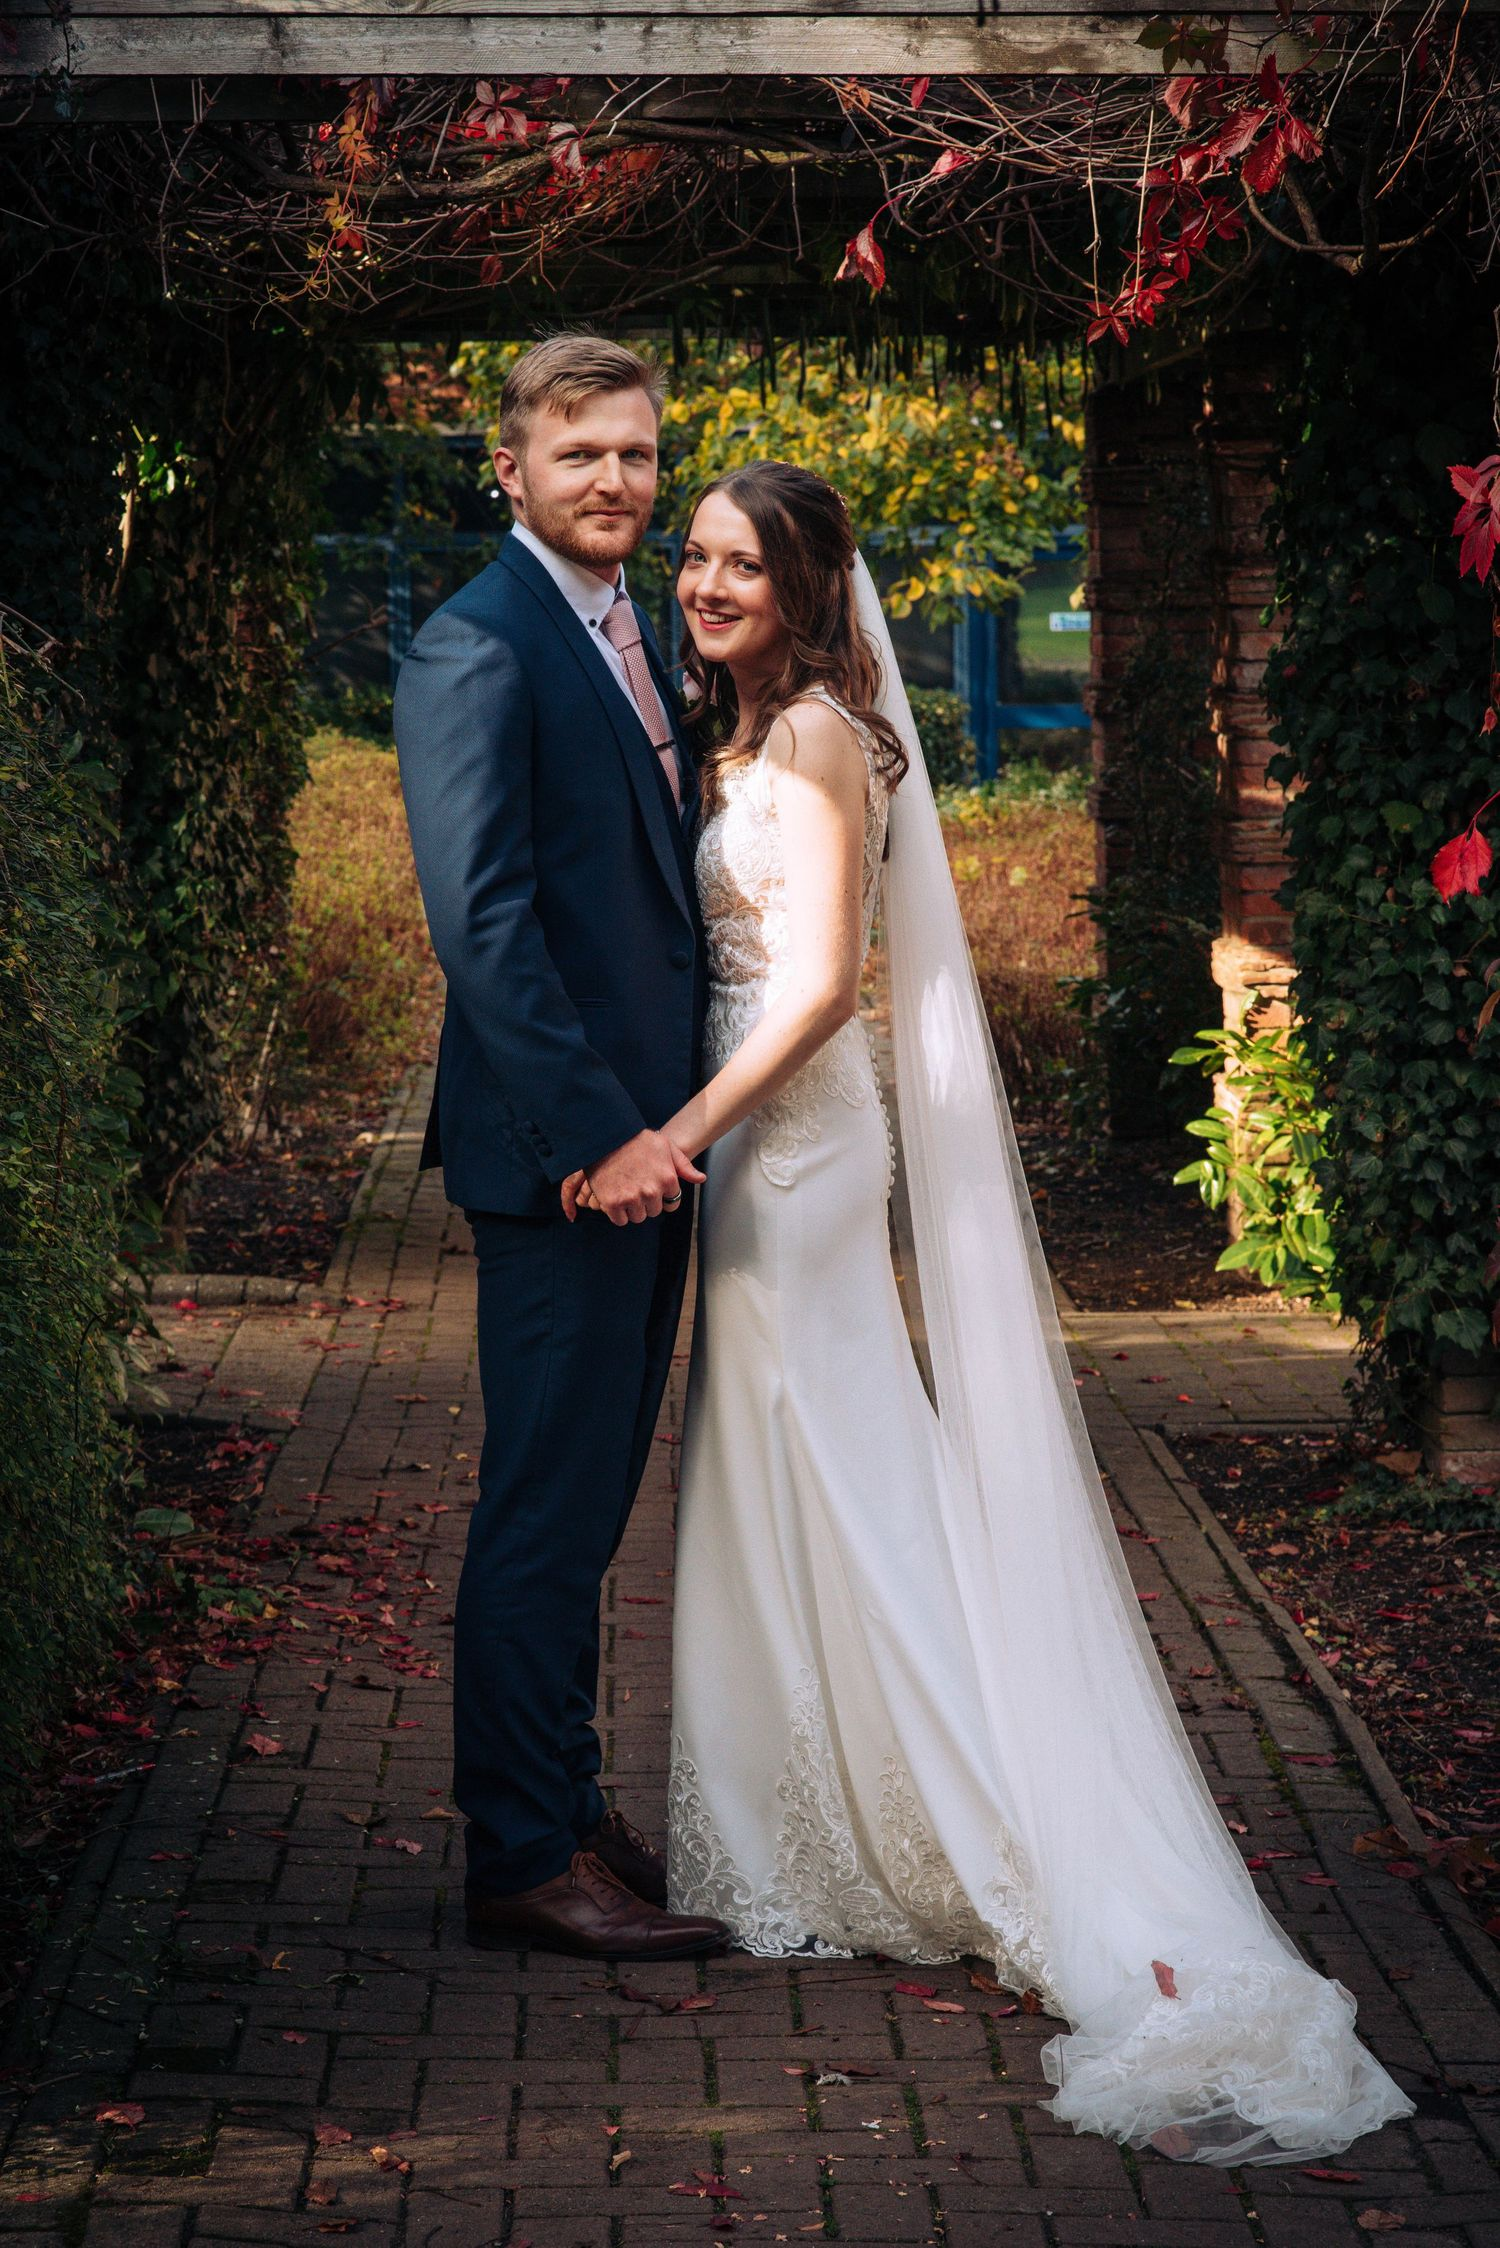 Swindon Registry office wedding by Zara Davis Photography, Gloucestershire bride and groom posed